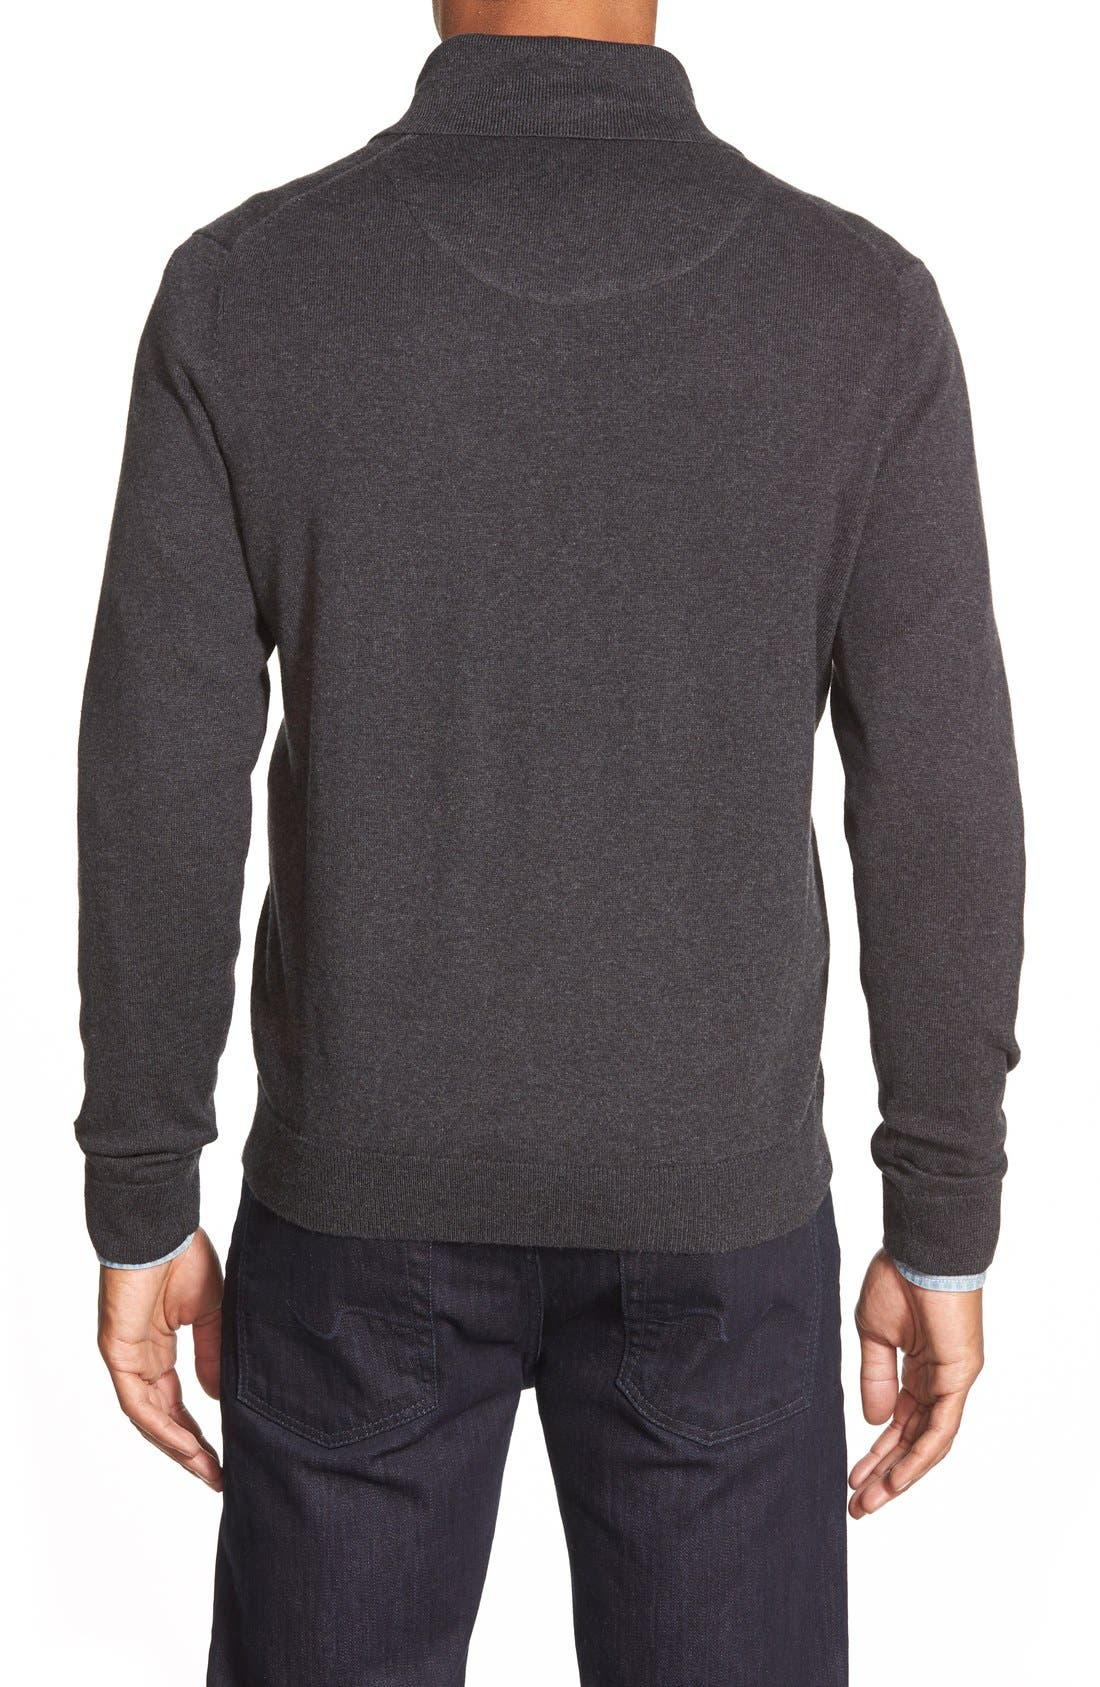 Cotton & Cashmere Shawl Collar Sweater,                             Alternate thumbnail 7, color,                             030